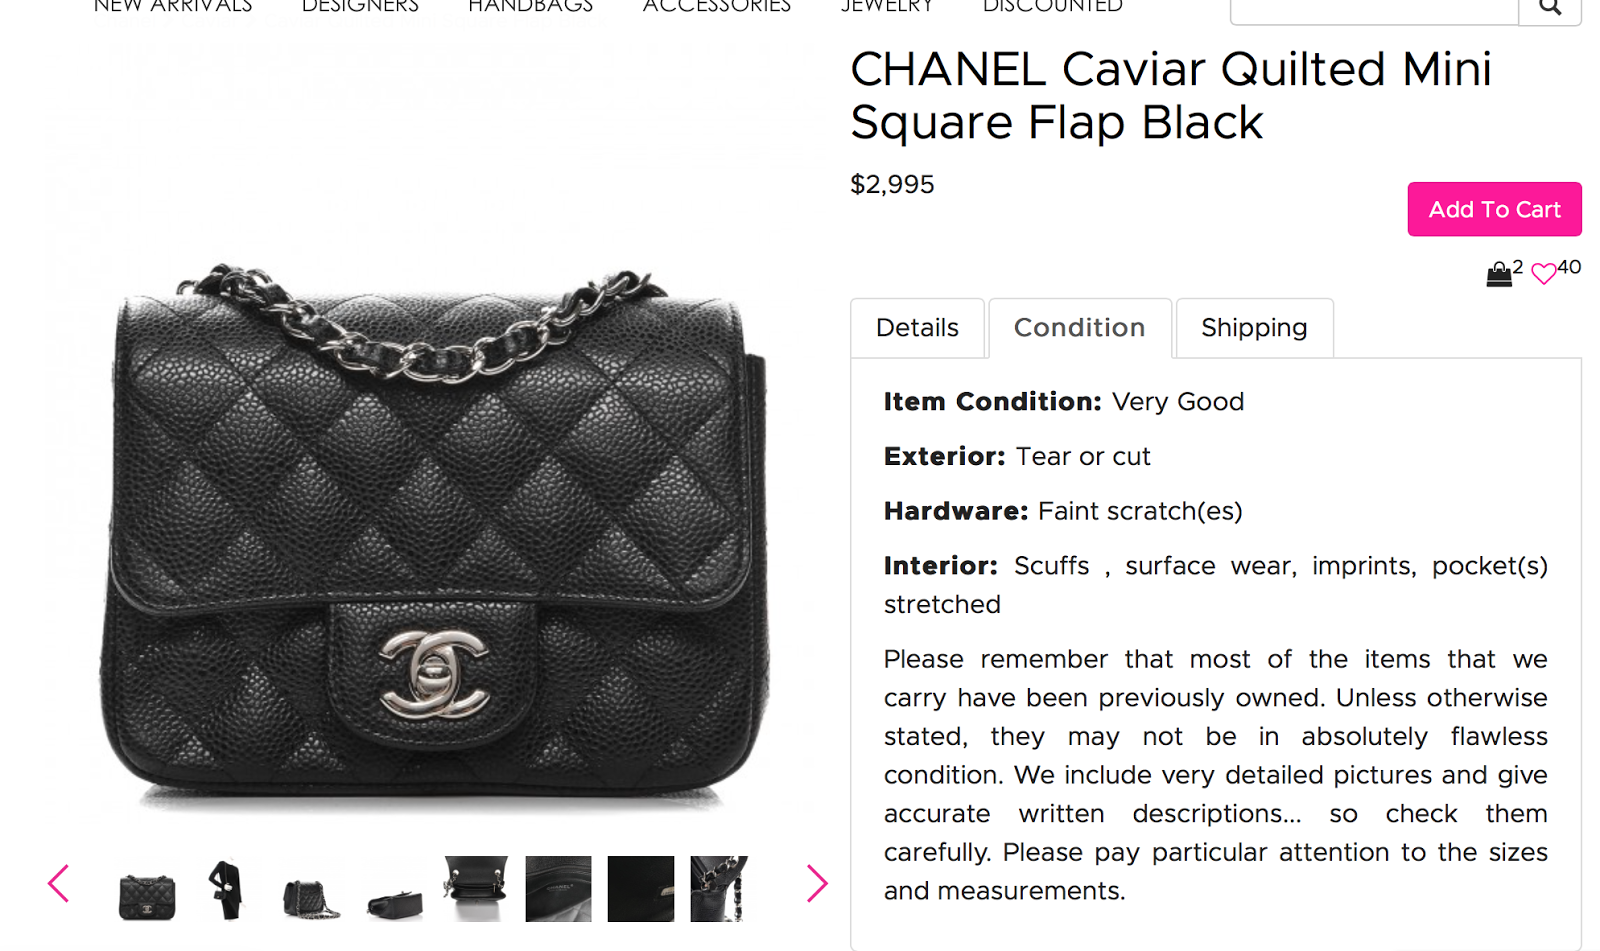 179384b94c5a49 1) Chanel Classic Quilted Double-Flap Bag: Due to Chanel's inflated prices,  I suggest purchasing the bag second-hand no matter the size.